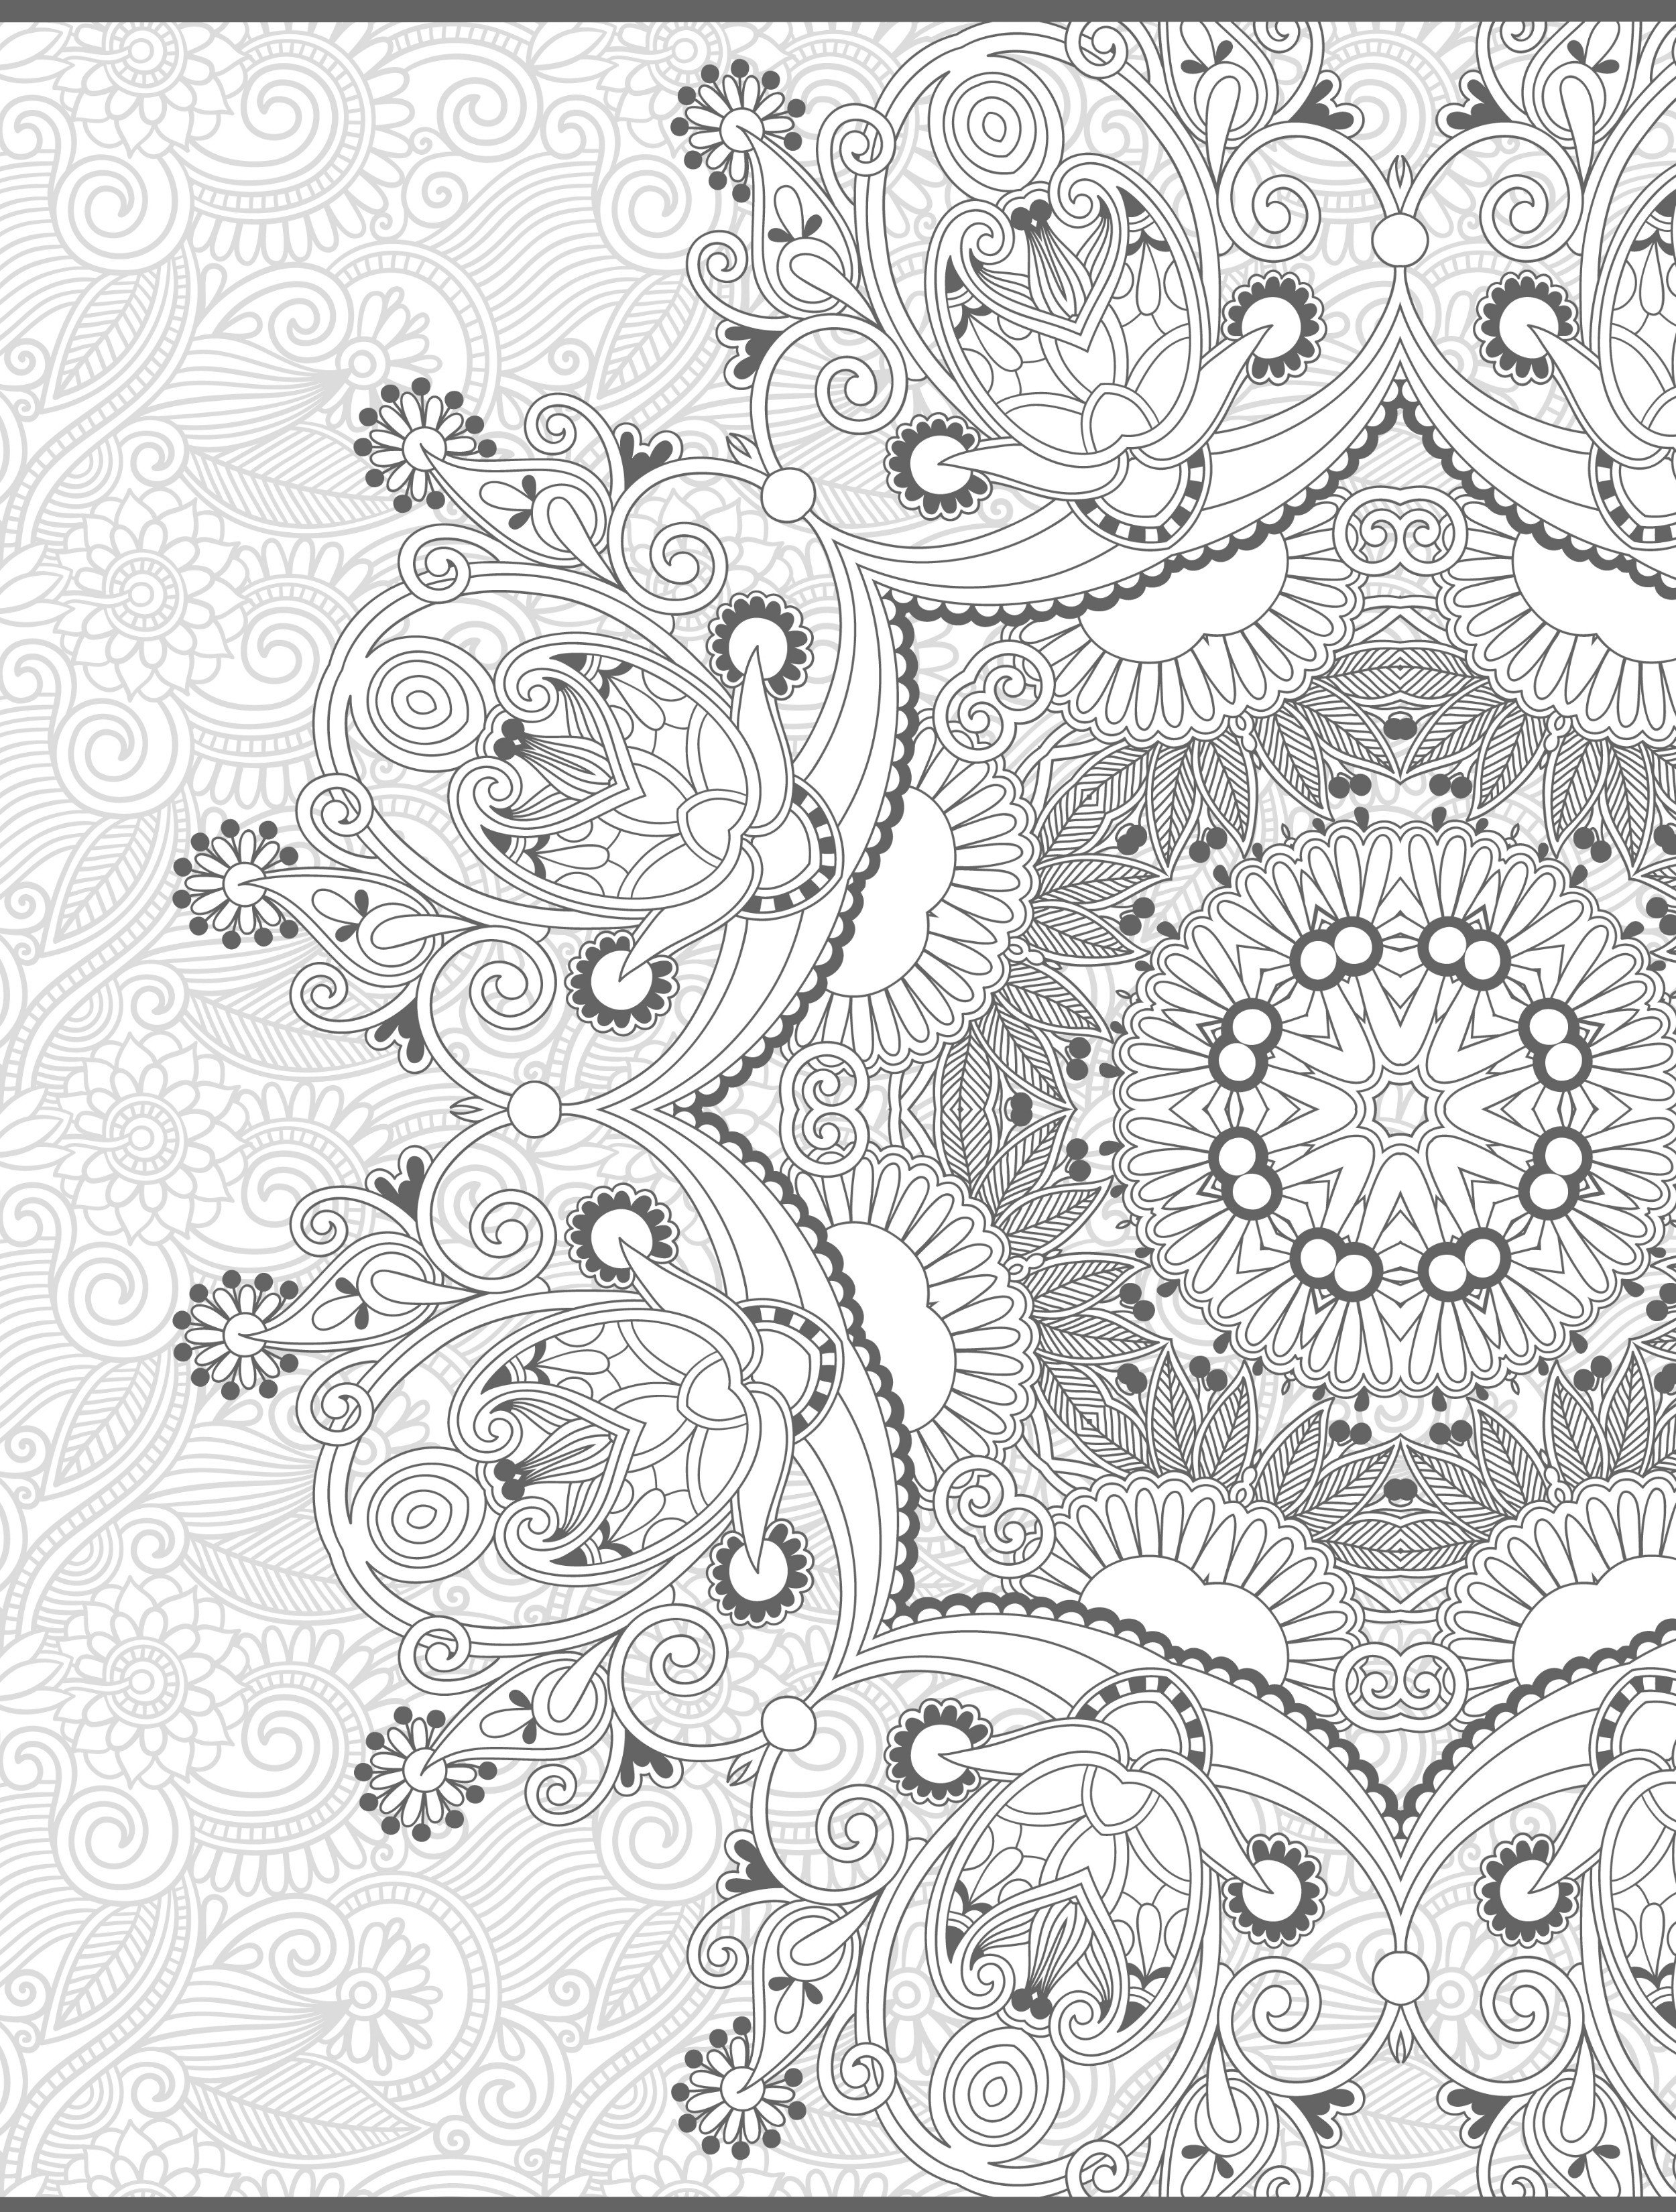 Best ideas about Pretty Coloring Pages For Adults . Save or Pin 24 More Free Printable Adult Coloring Pages Page 4 of 25 Now.